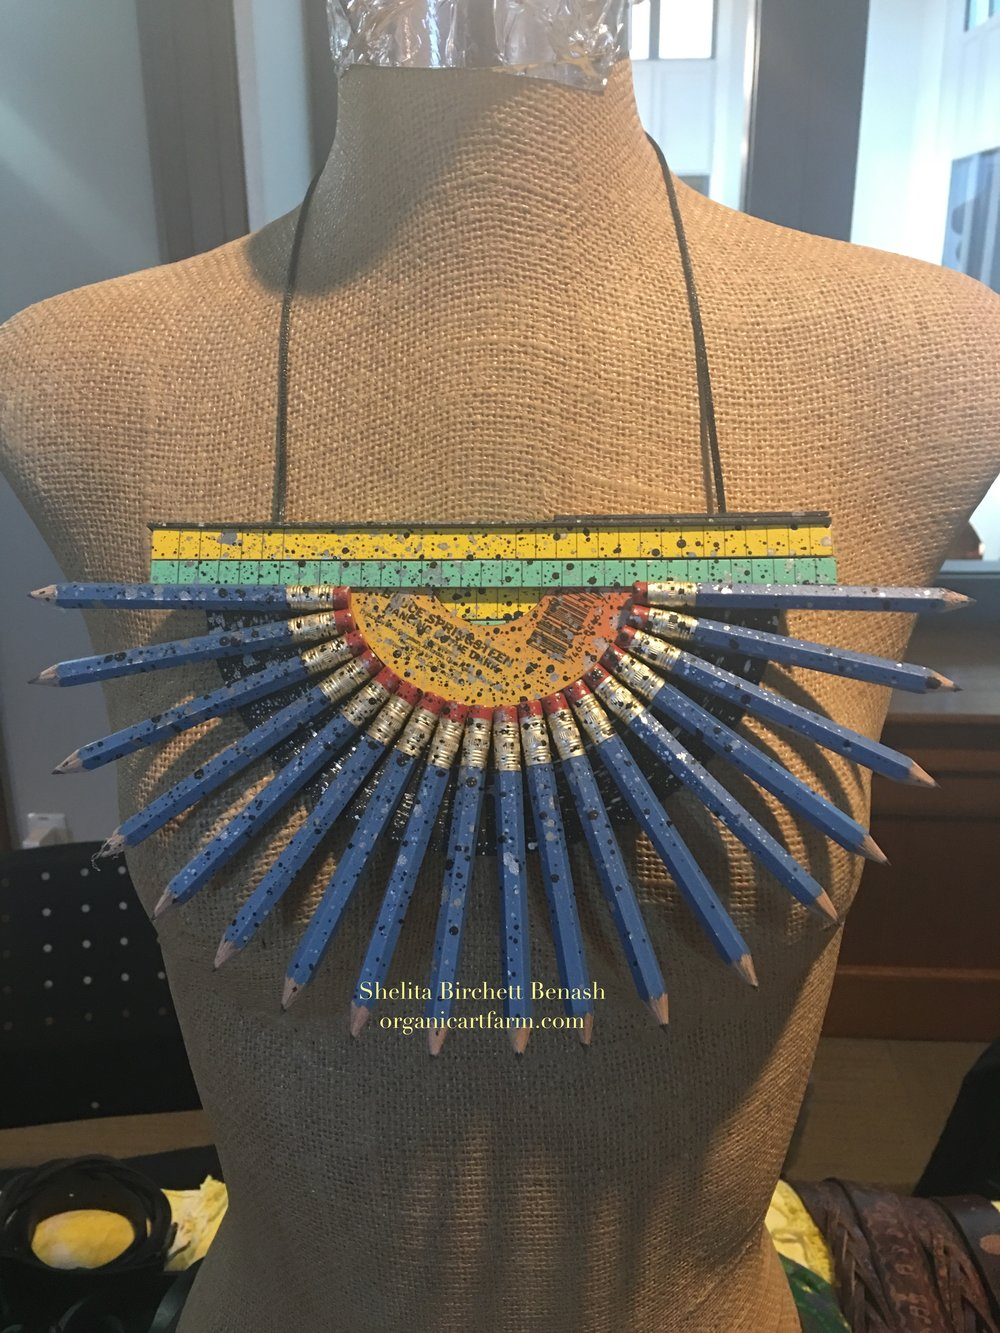 """On the Record"" sustainable art wear necklace by Shelita Birchett Benash  Marist College Ethical Fashion Fair 2017."